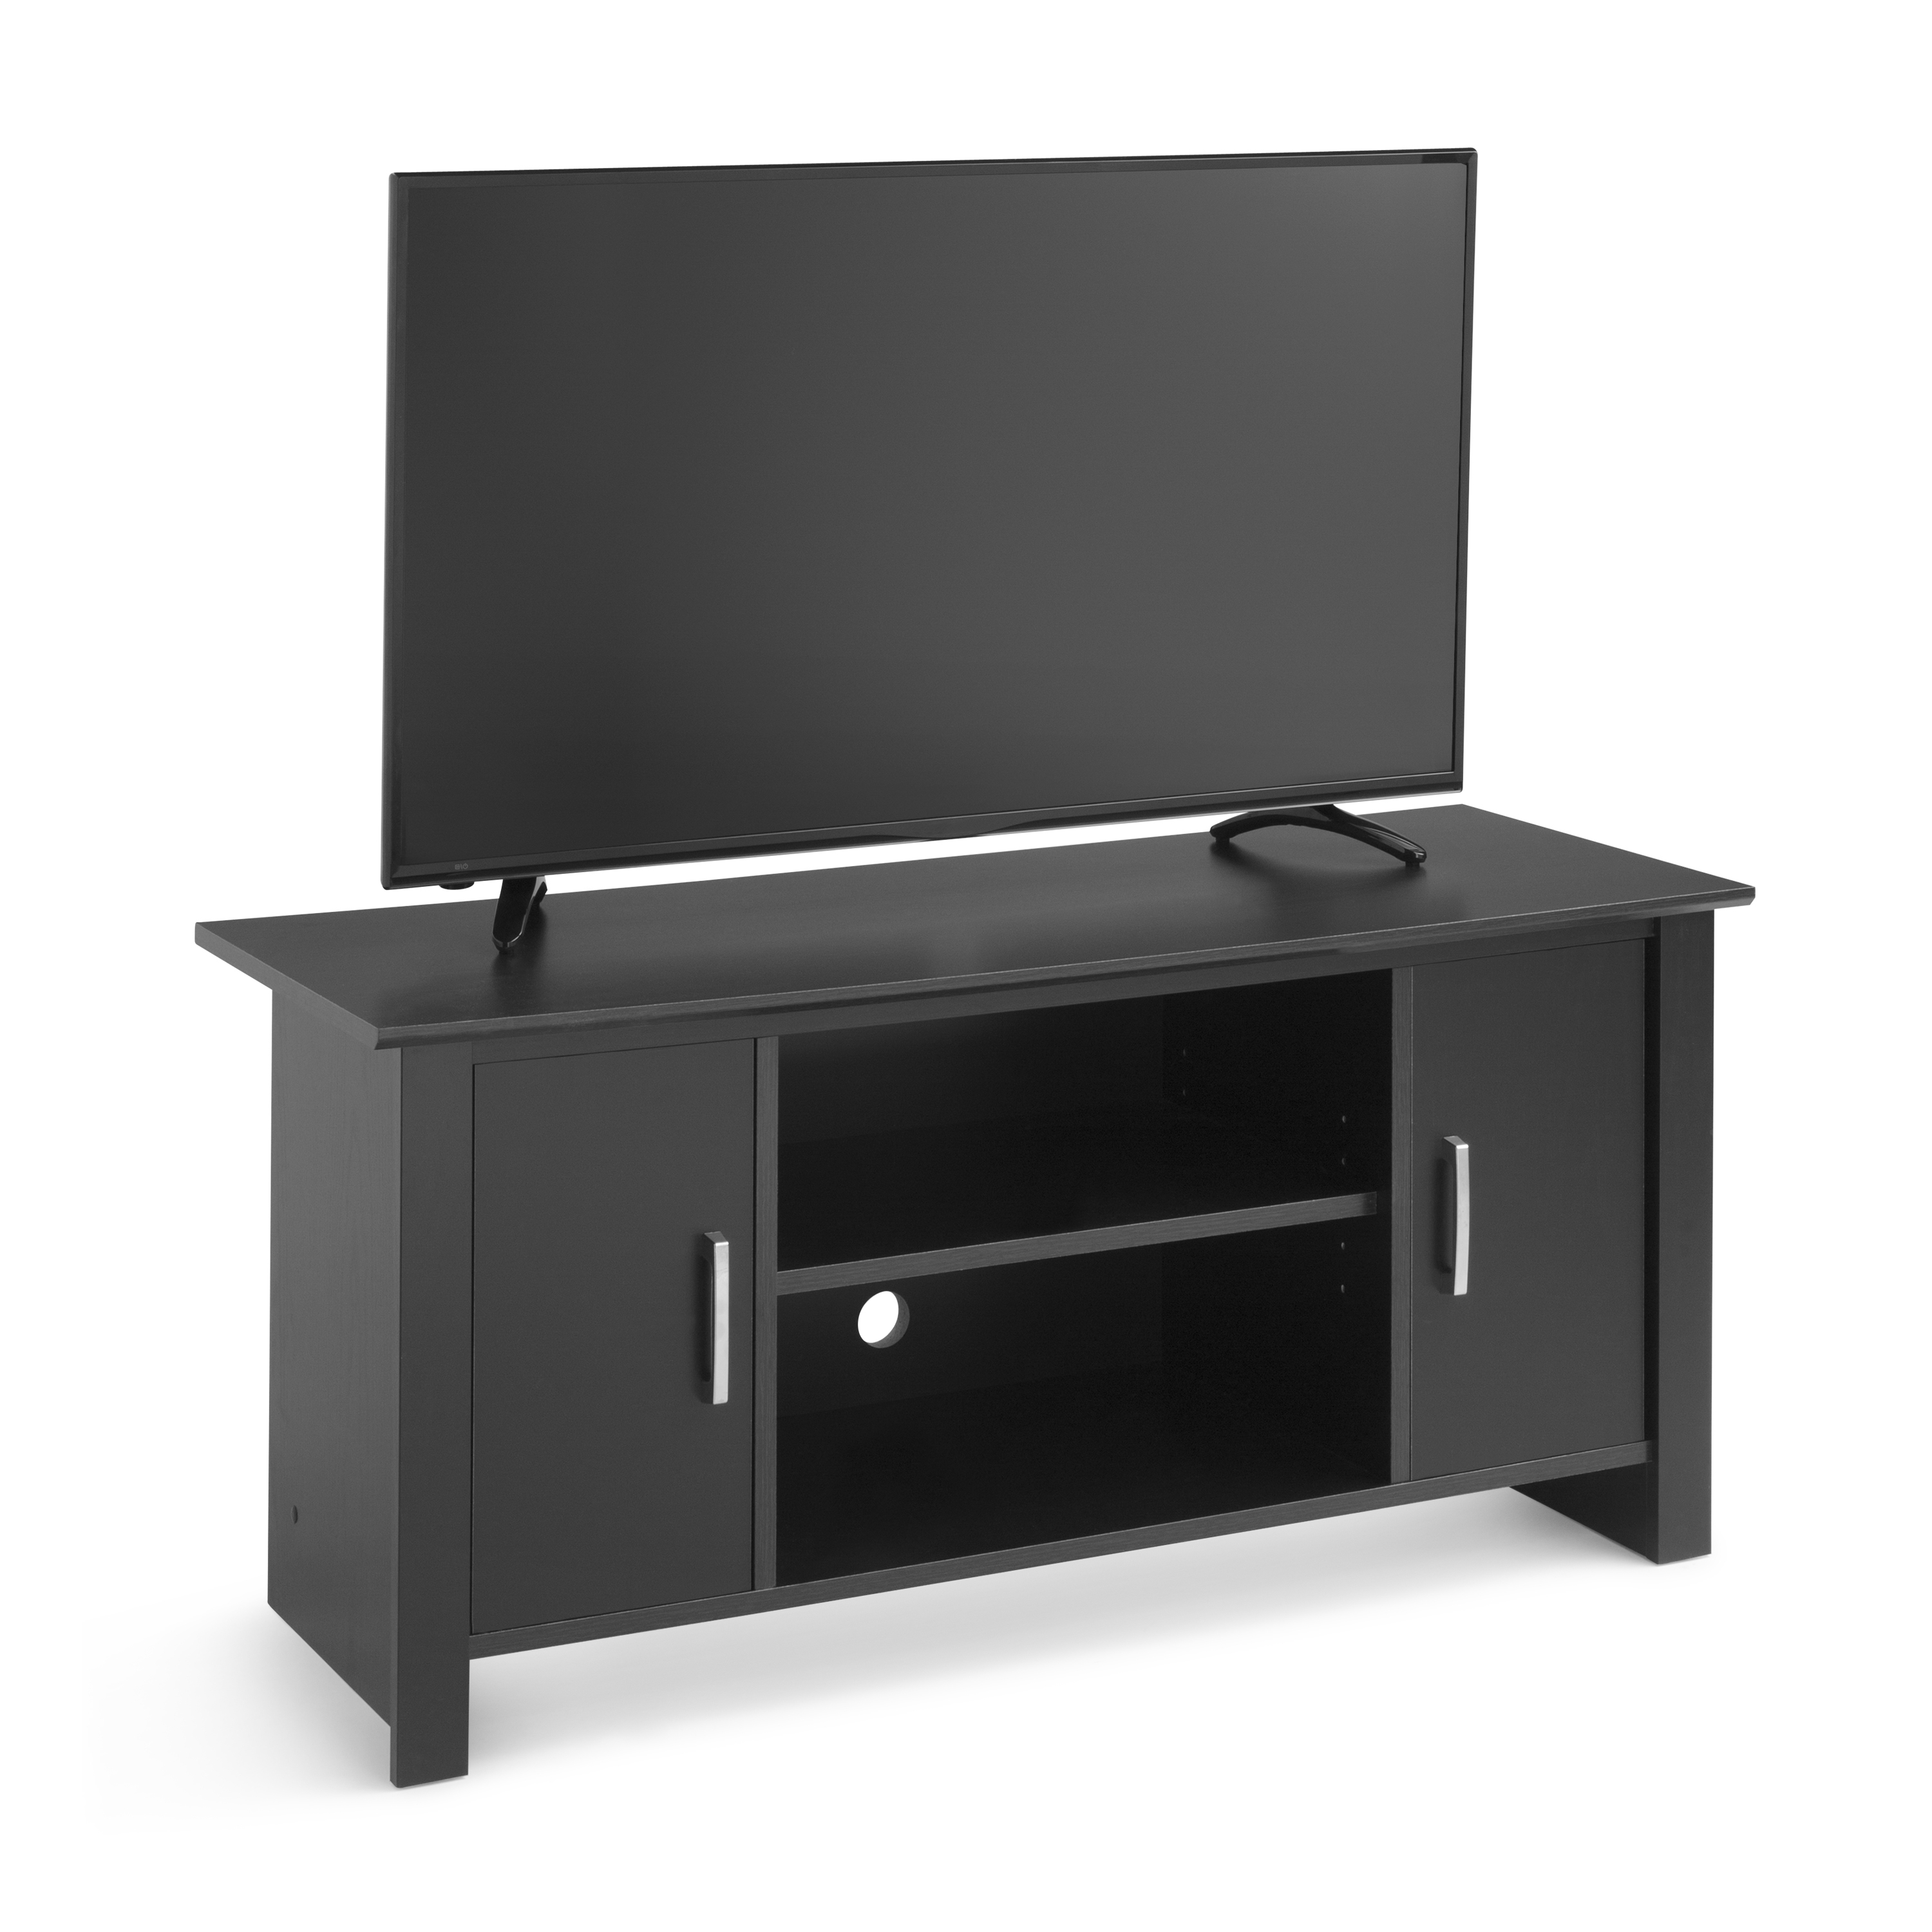 "Most Up To Date Mainstays Tv Stand For Flat Screen Tvs Up To 47"", Canyon Walnut In Enclosed Tv Cabinets For Flat Screens With Doors (View 4 of 20)"